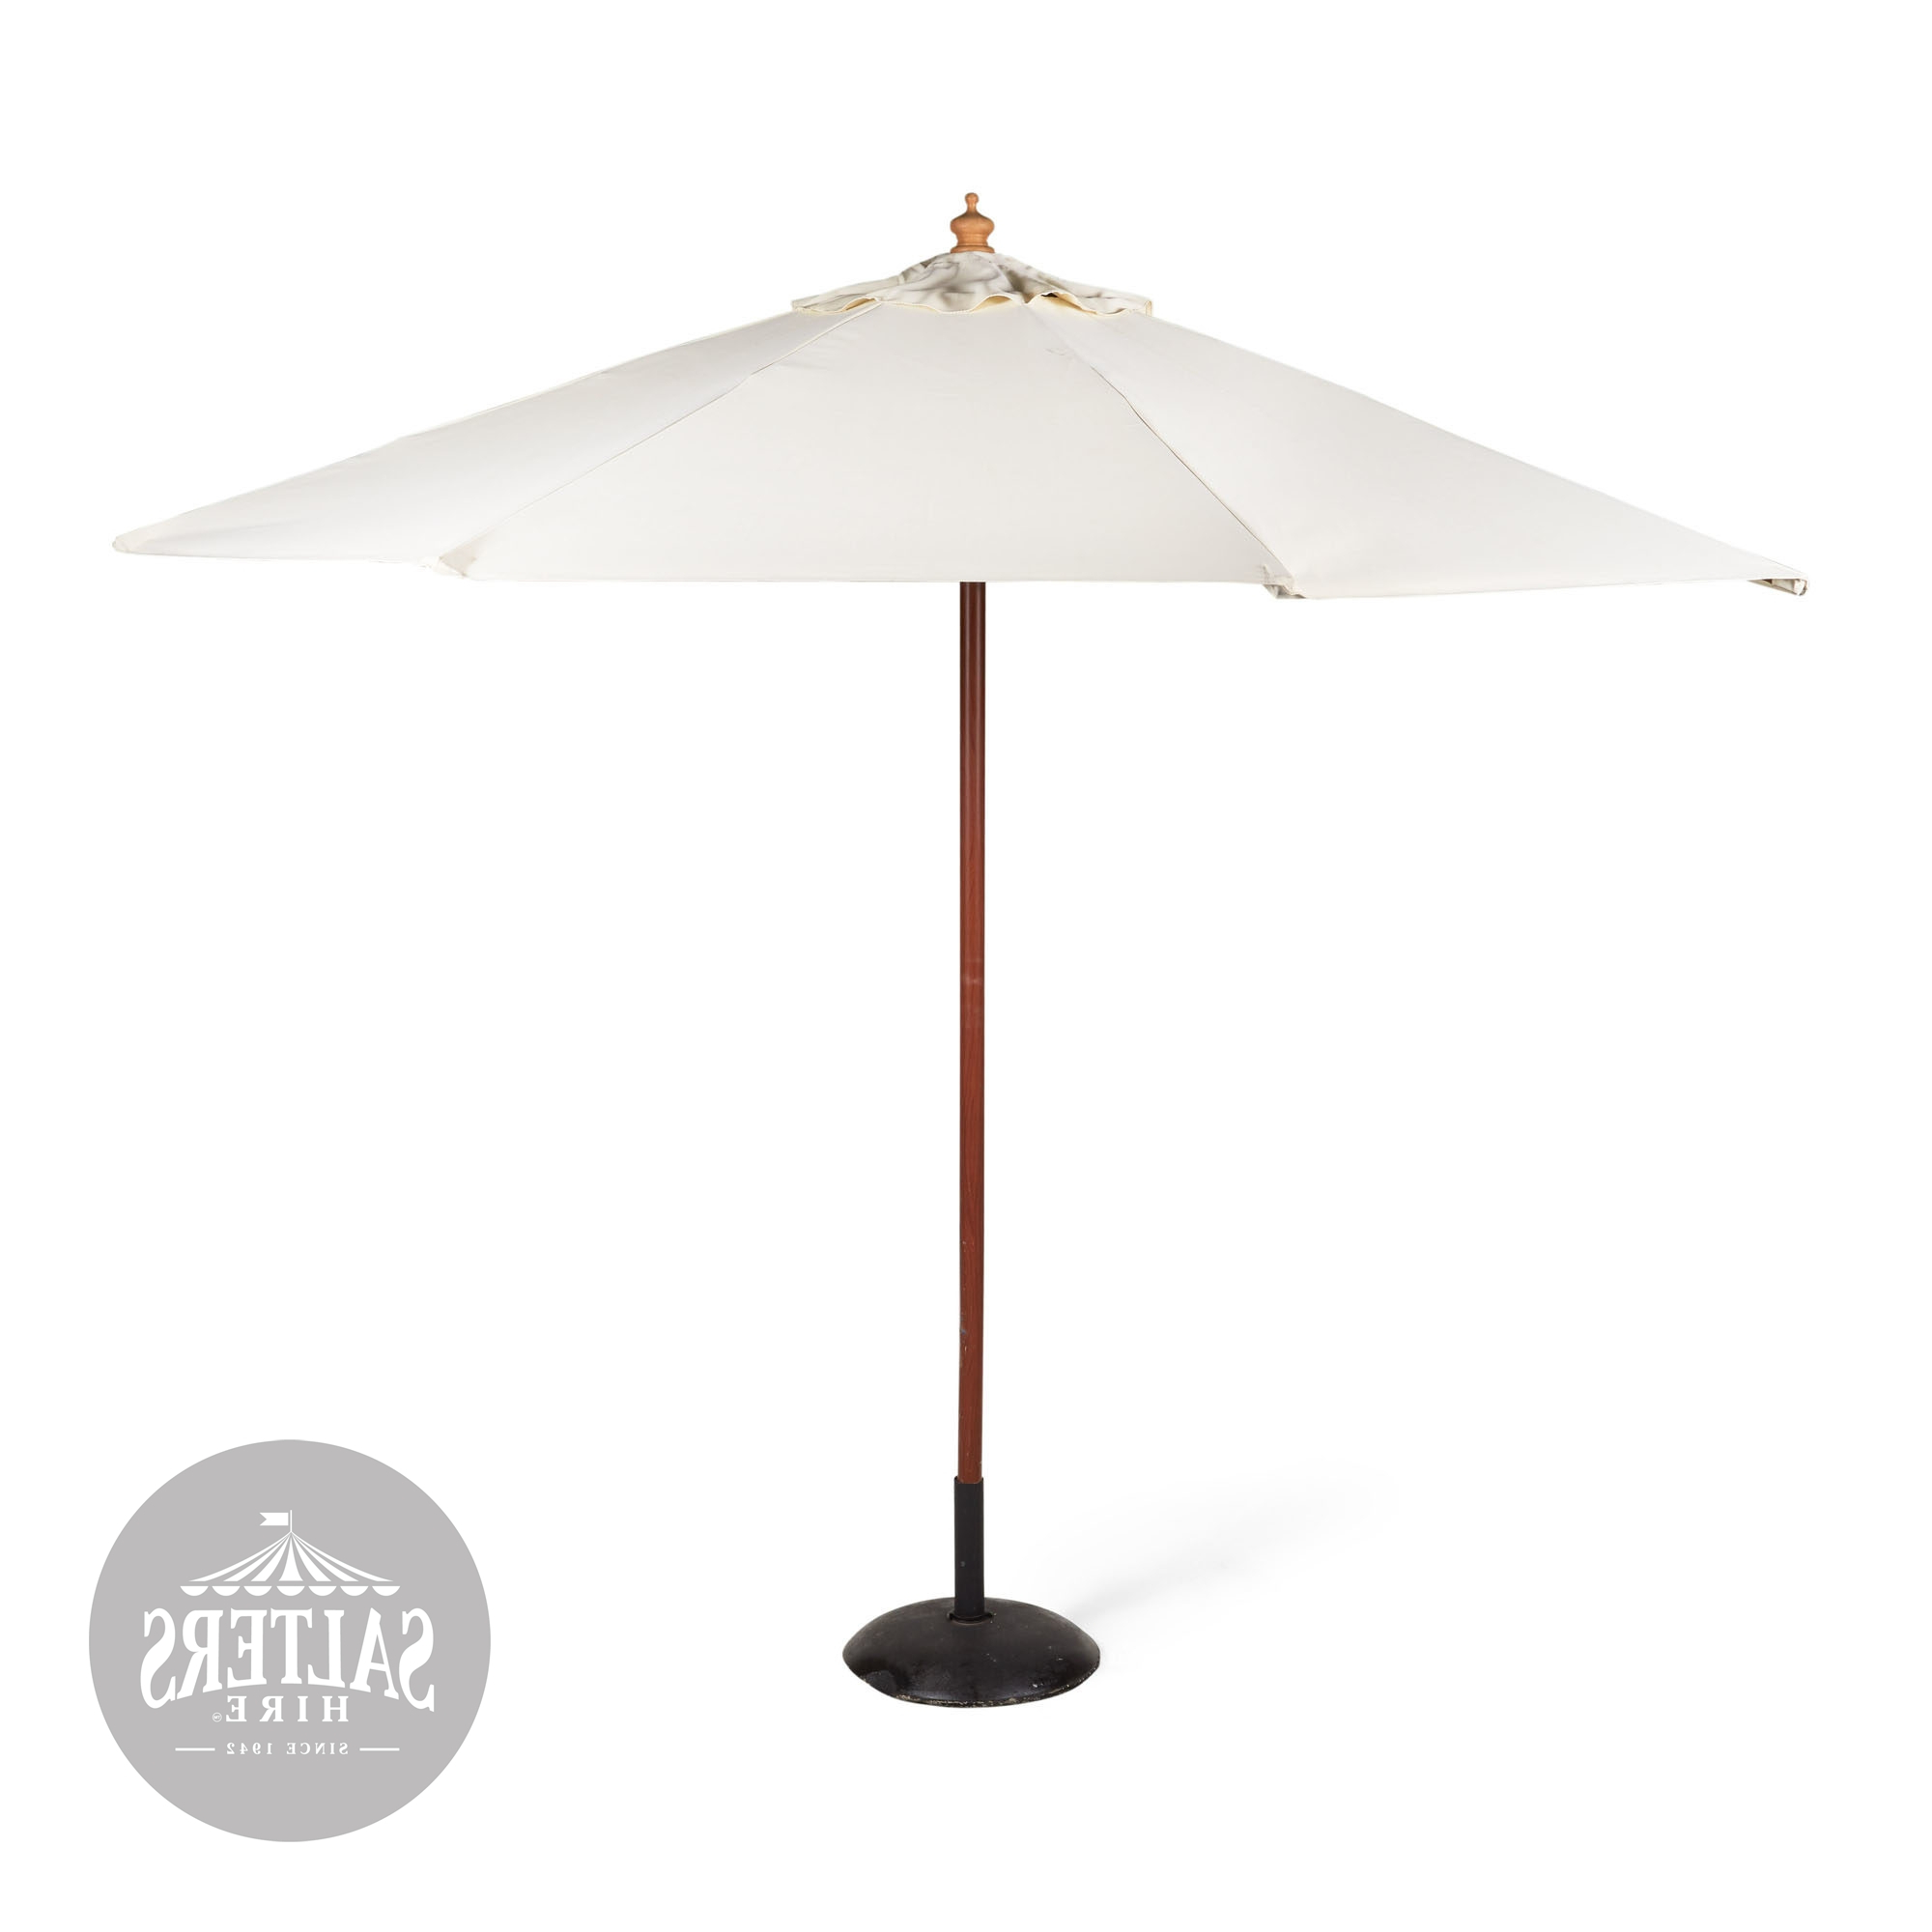 Best And Newest Market Umbrella – 3m No Stand Within Market Umbrellas (View 5 of 20)